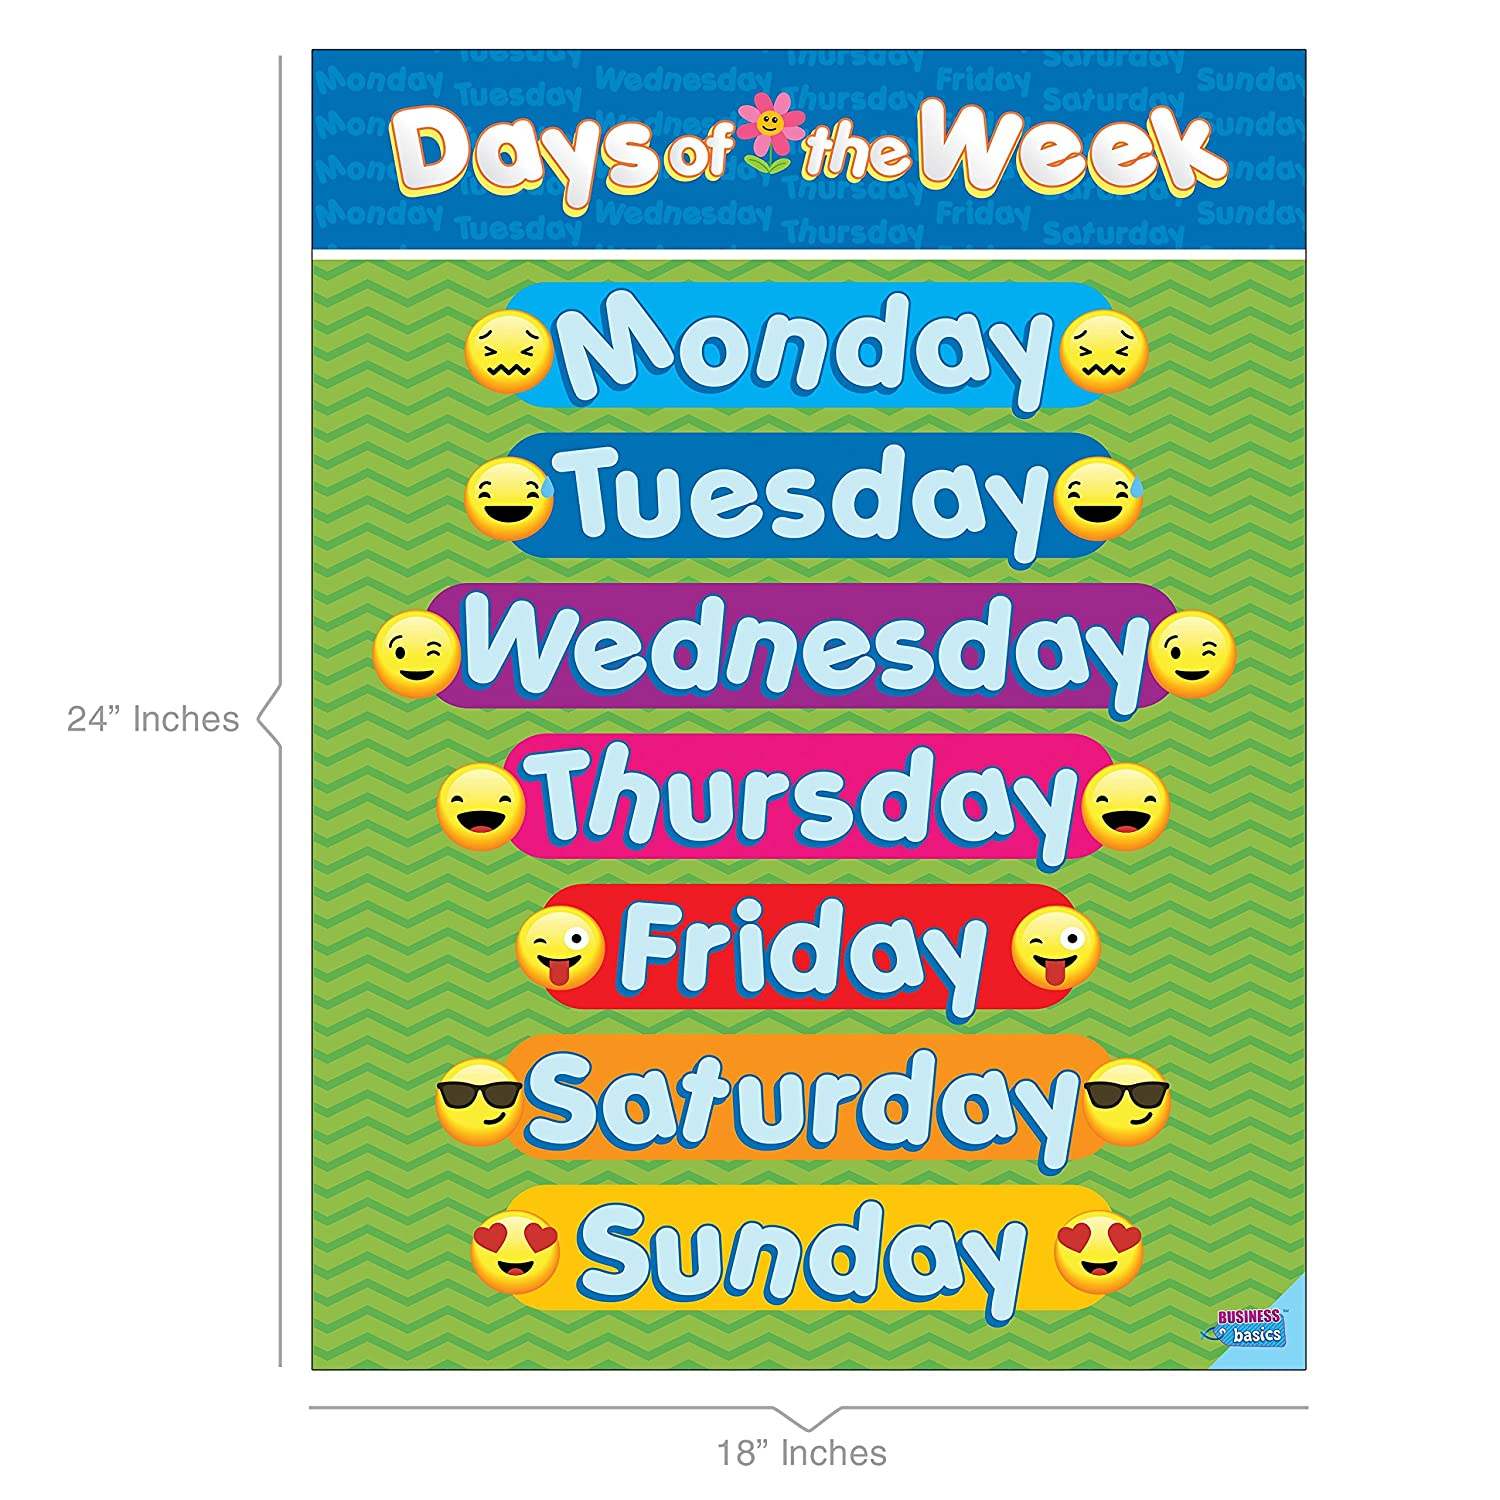 Amazon.com : Educational Preschool Posters for Toddlers and Kids ...